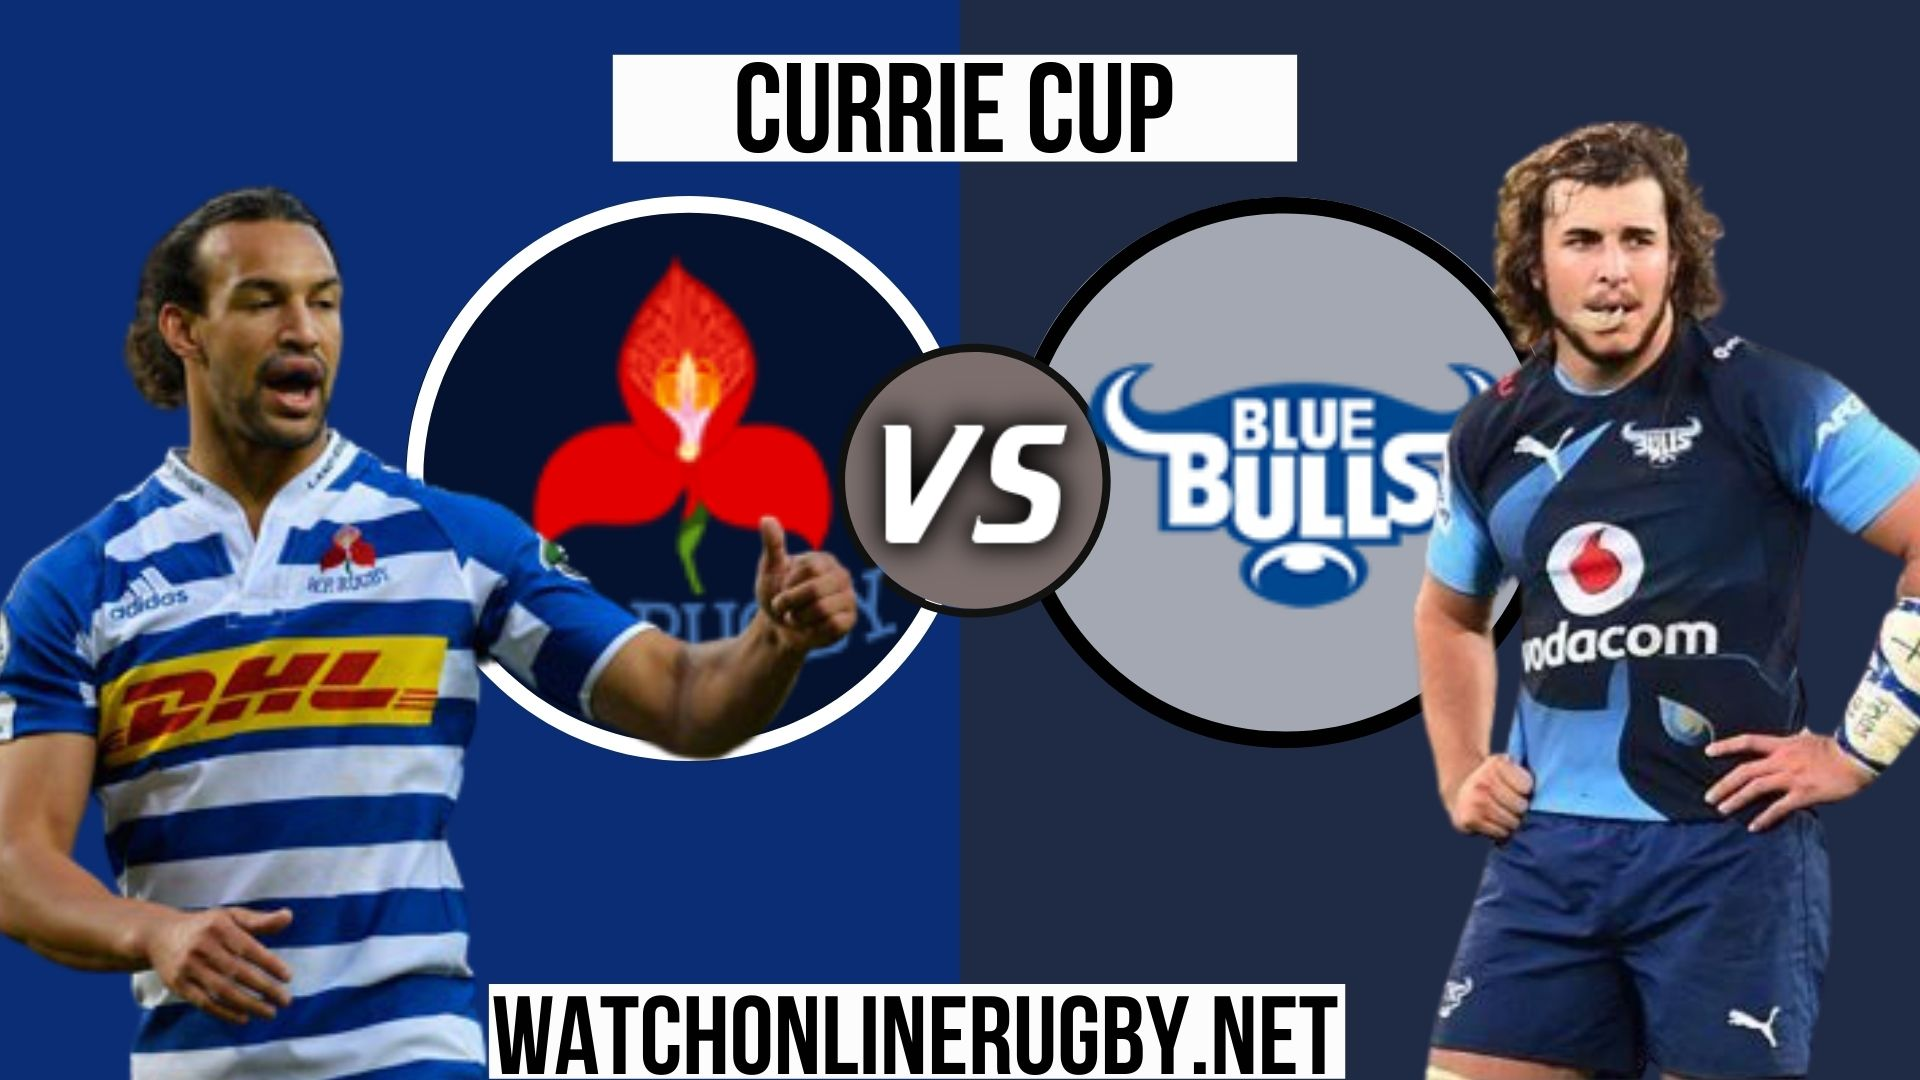 Western Province vs Bulls Currie Cup 2020